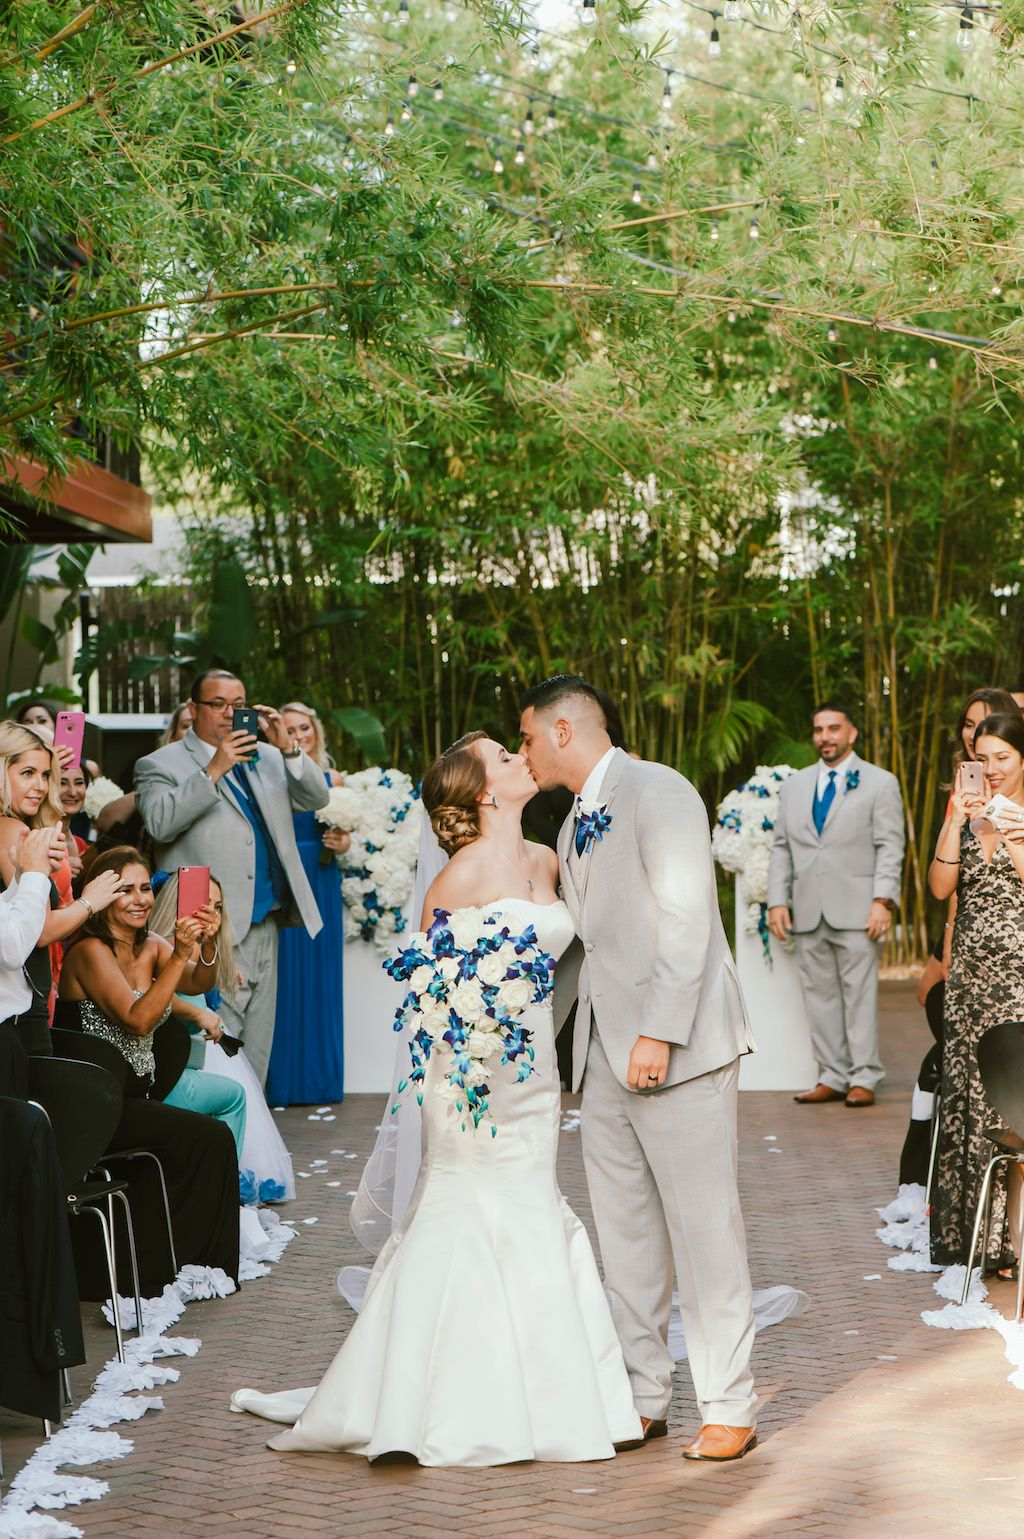 Blue and white wedding ceremony at NOVA 535 in St Pete